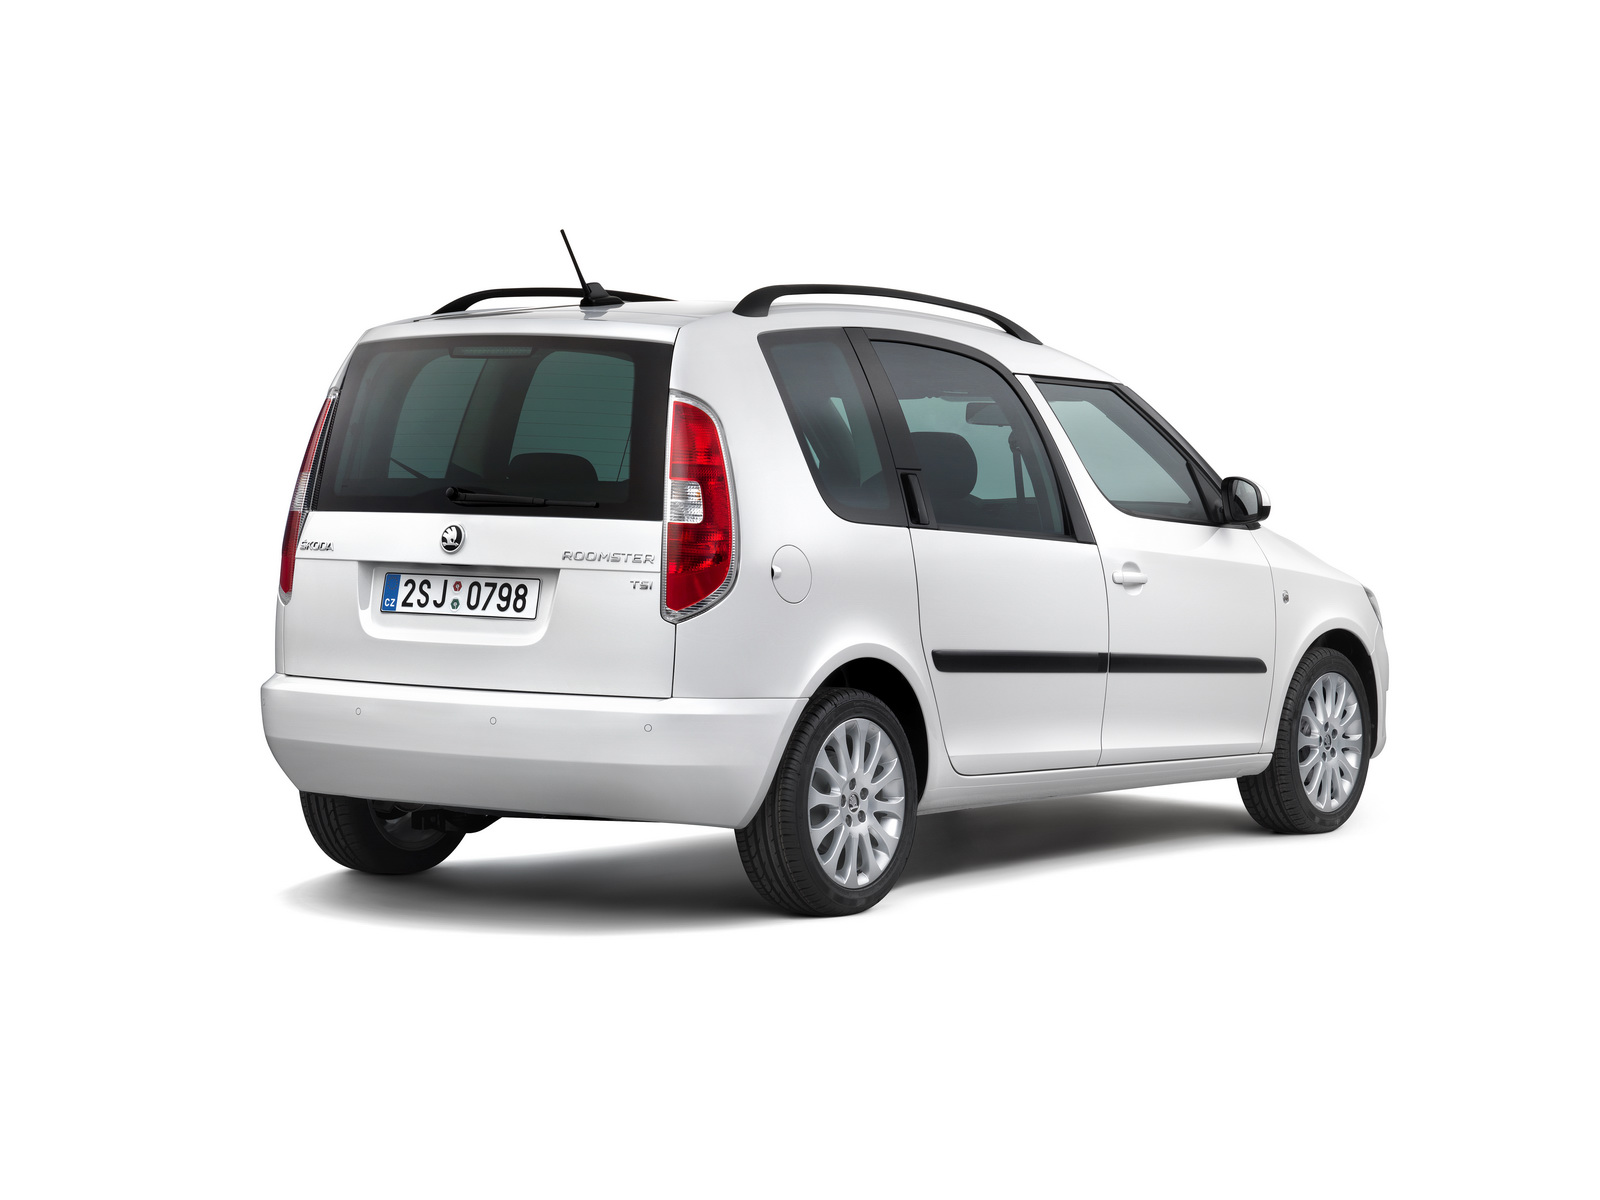 skoda roomster reportedly axed by czech automaker carscoops. Black Bedroom Furniture Sets. Home Design Ideas